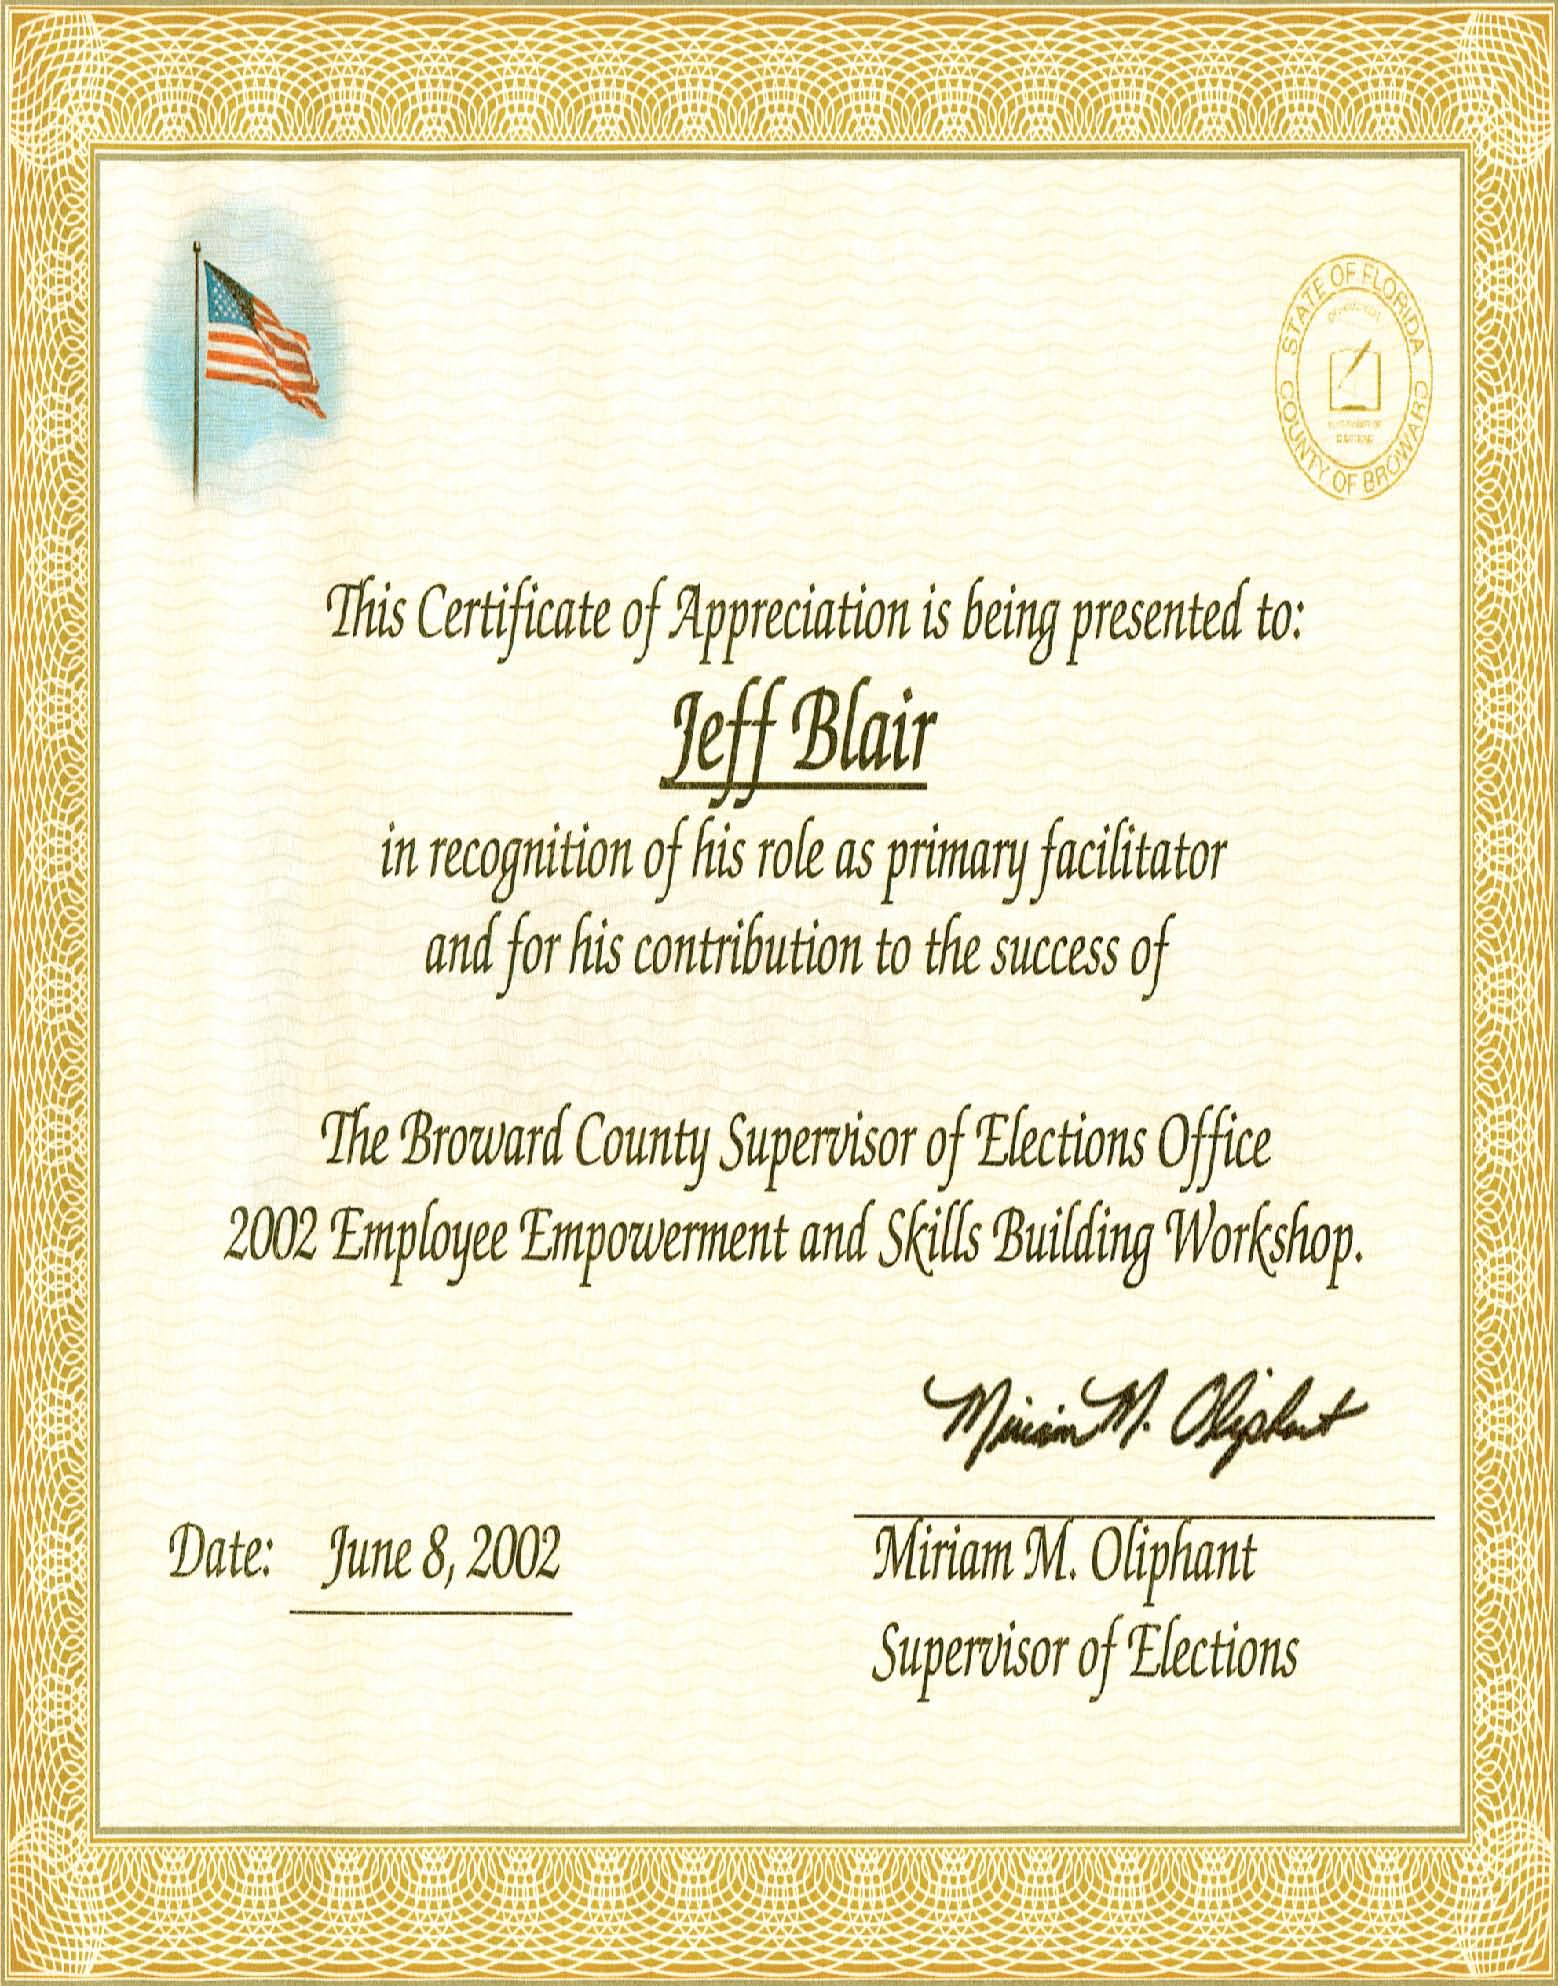 Broward County Supervisor of Elections Certificate of Appreciation